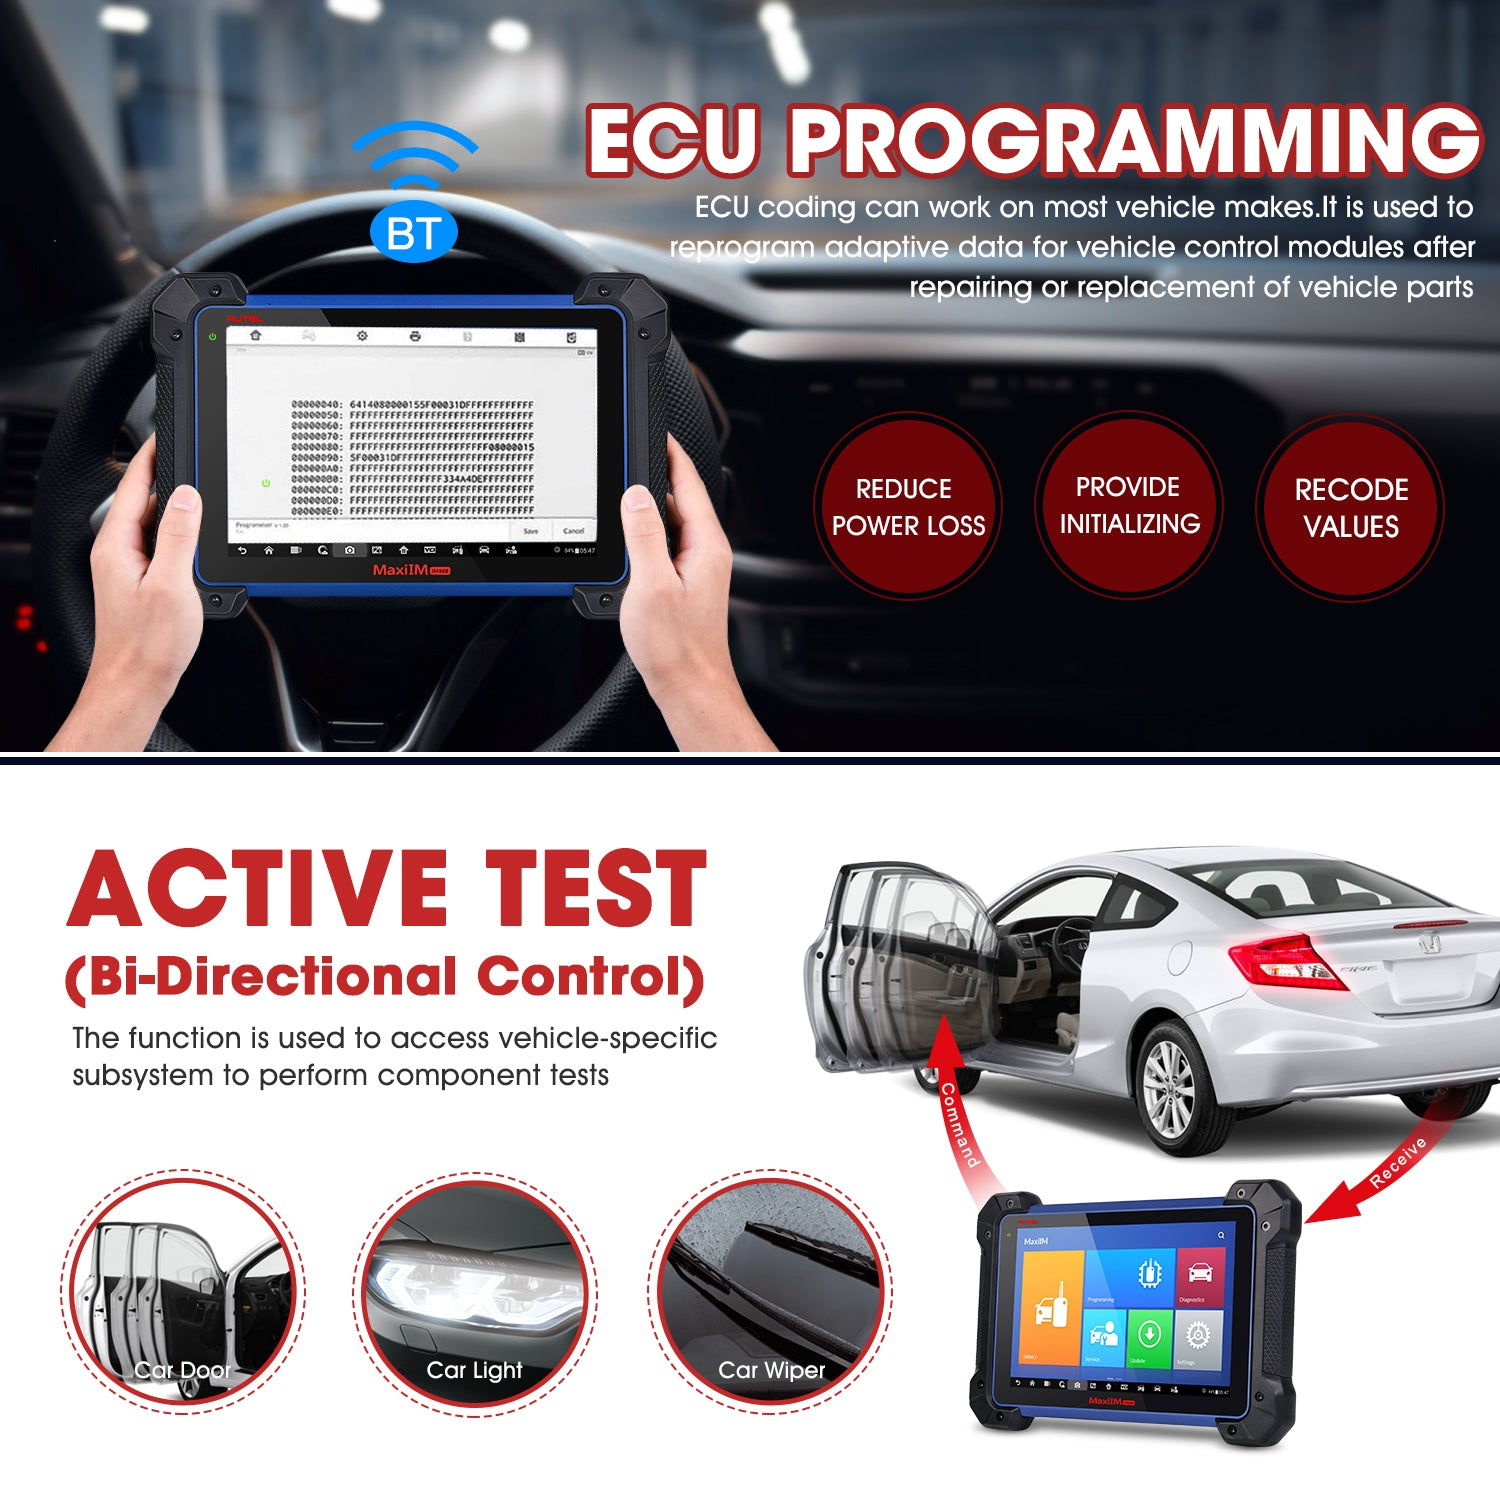 The ECU programming of the IM608 diagnostic tool can be used on most cars